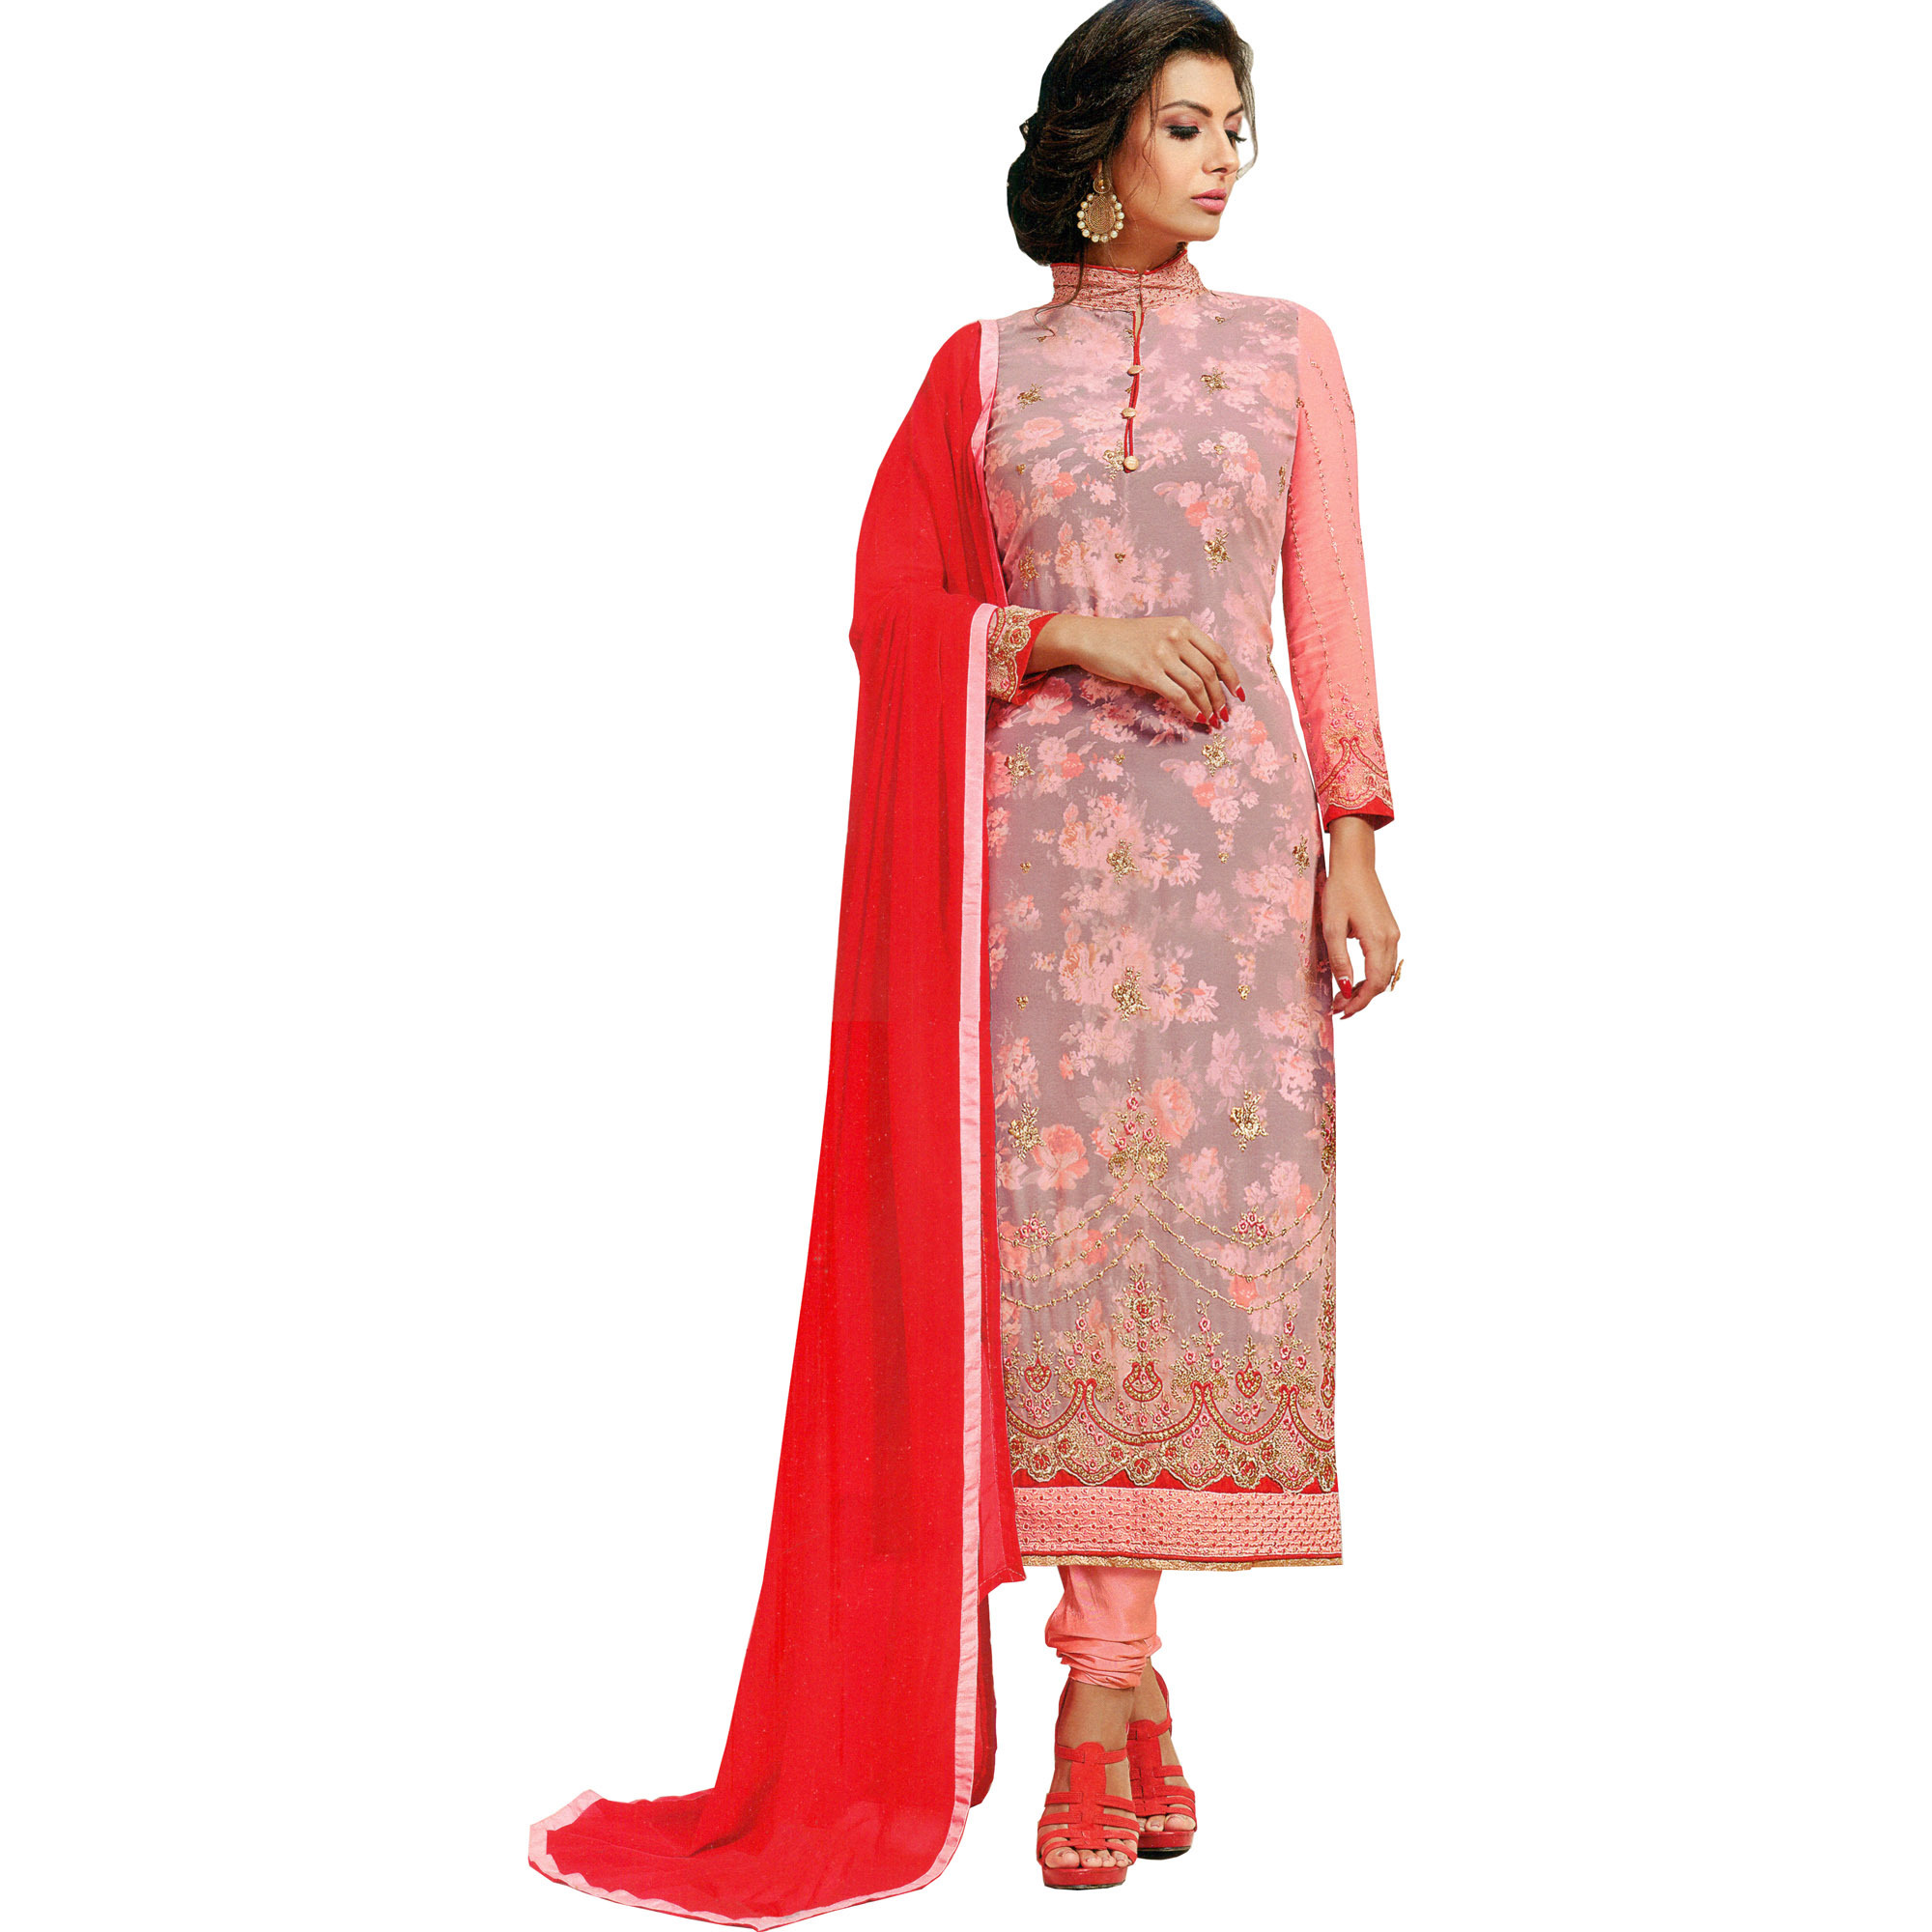 Impatiens-Pink Long Choodidaar Kameez Suit with Floral-Print and Embroidery in Zari Thread